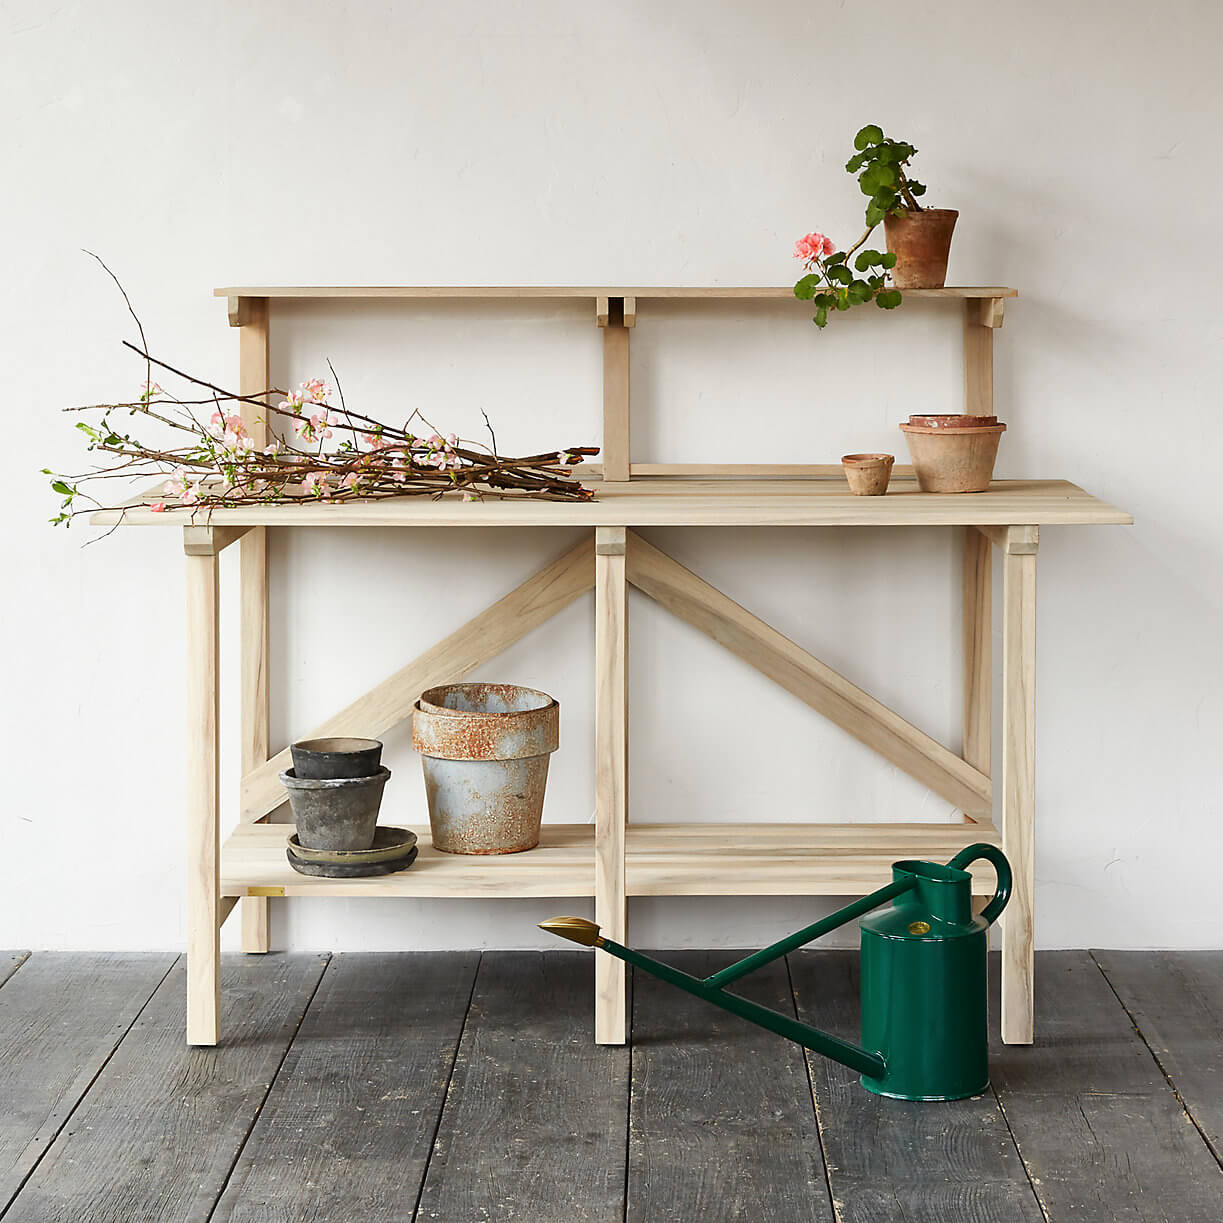 Teak potting table with clean lines